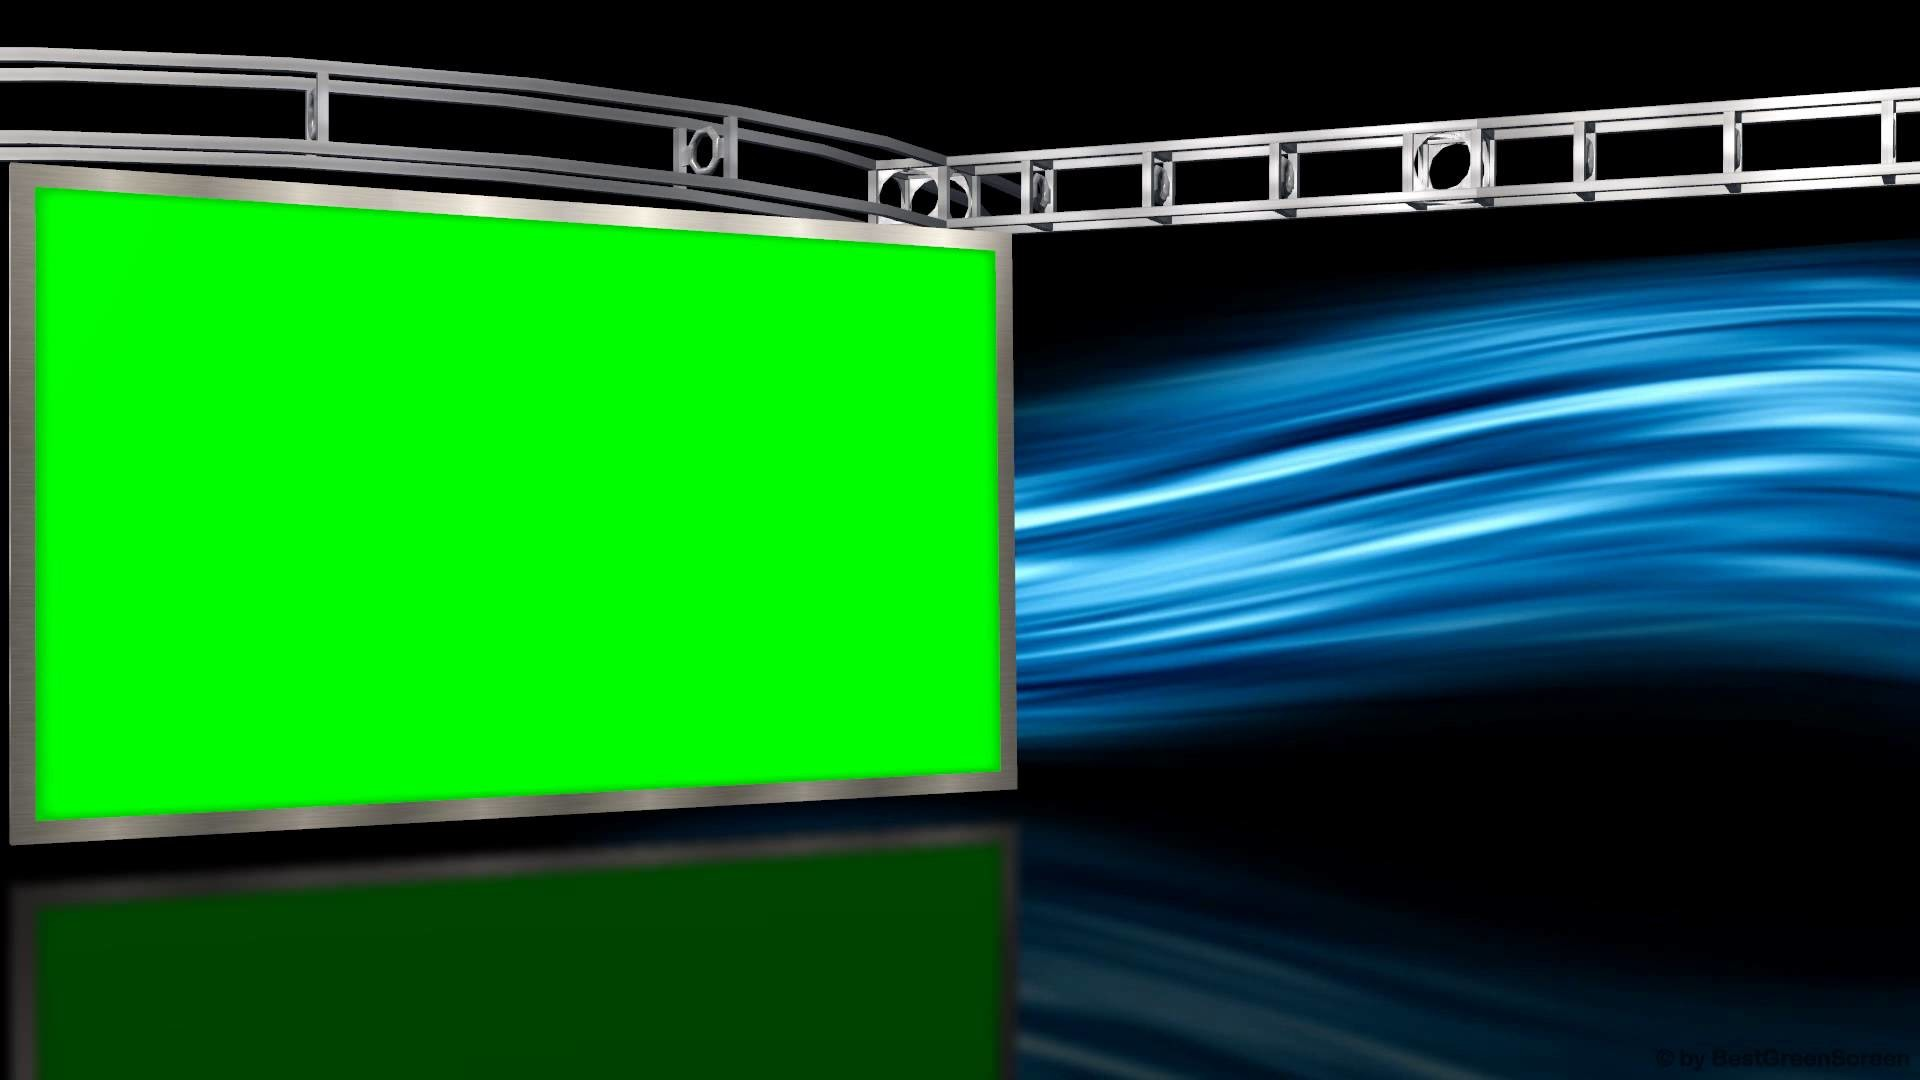 1920x1080 Virtual Studio with Green Screen Wall and motion Background - Free Download  Link - YouTube